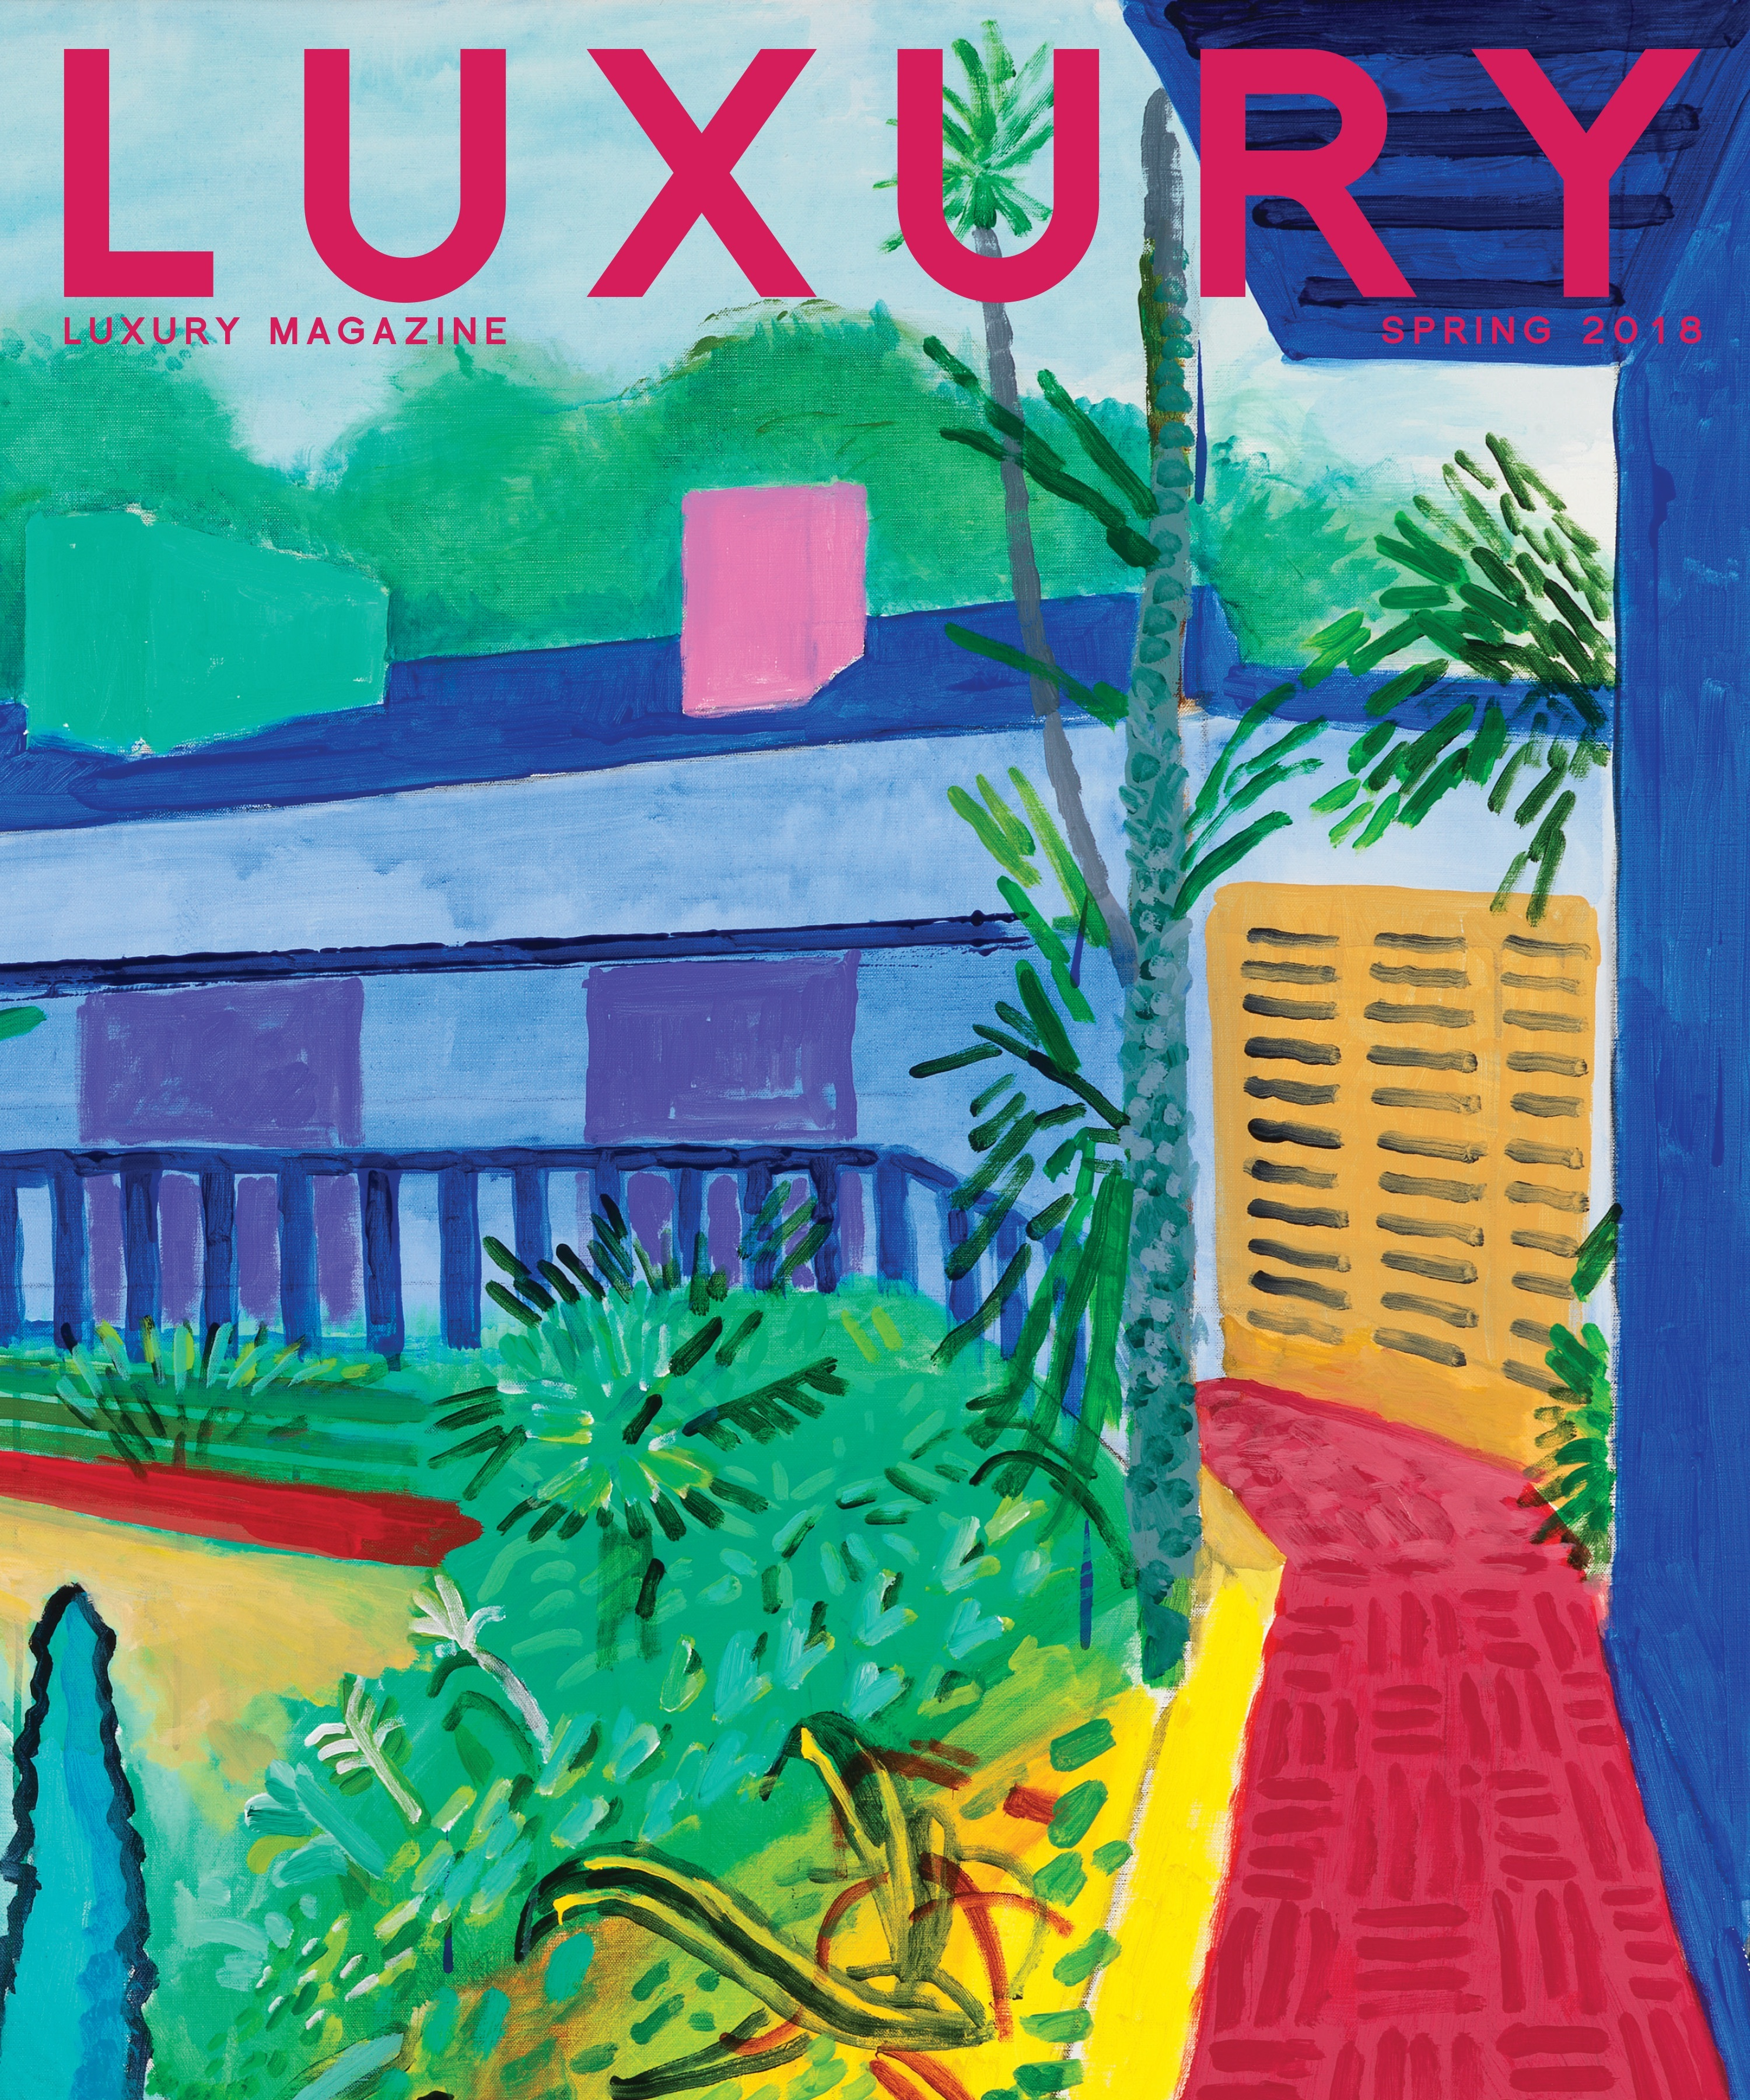 LUXURY MAGAZINE Unveils Its Spring 2018 Issue: Spa, Wellness and ...